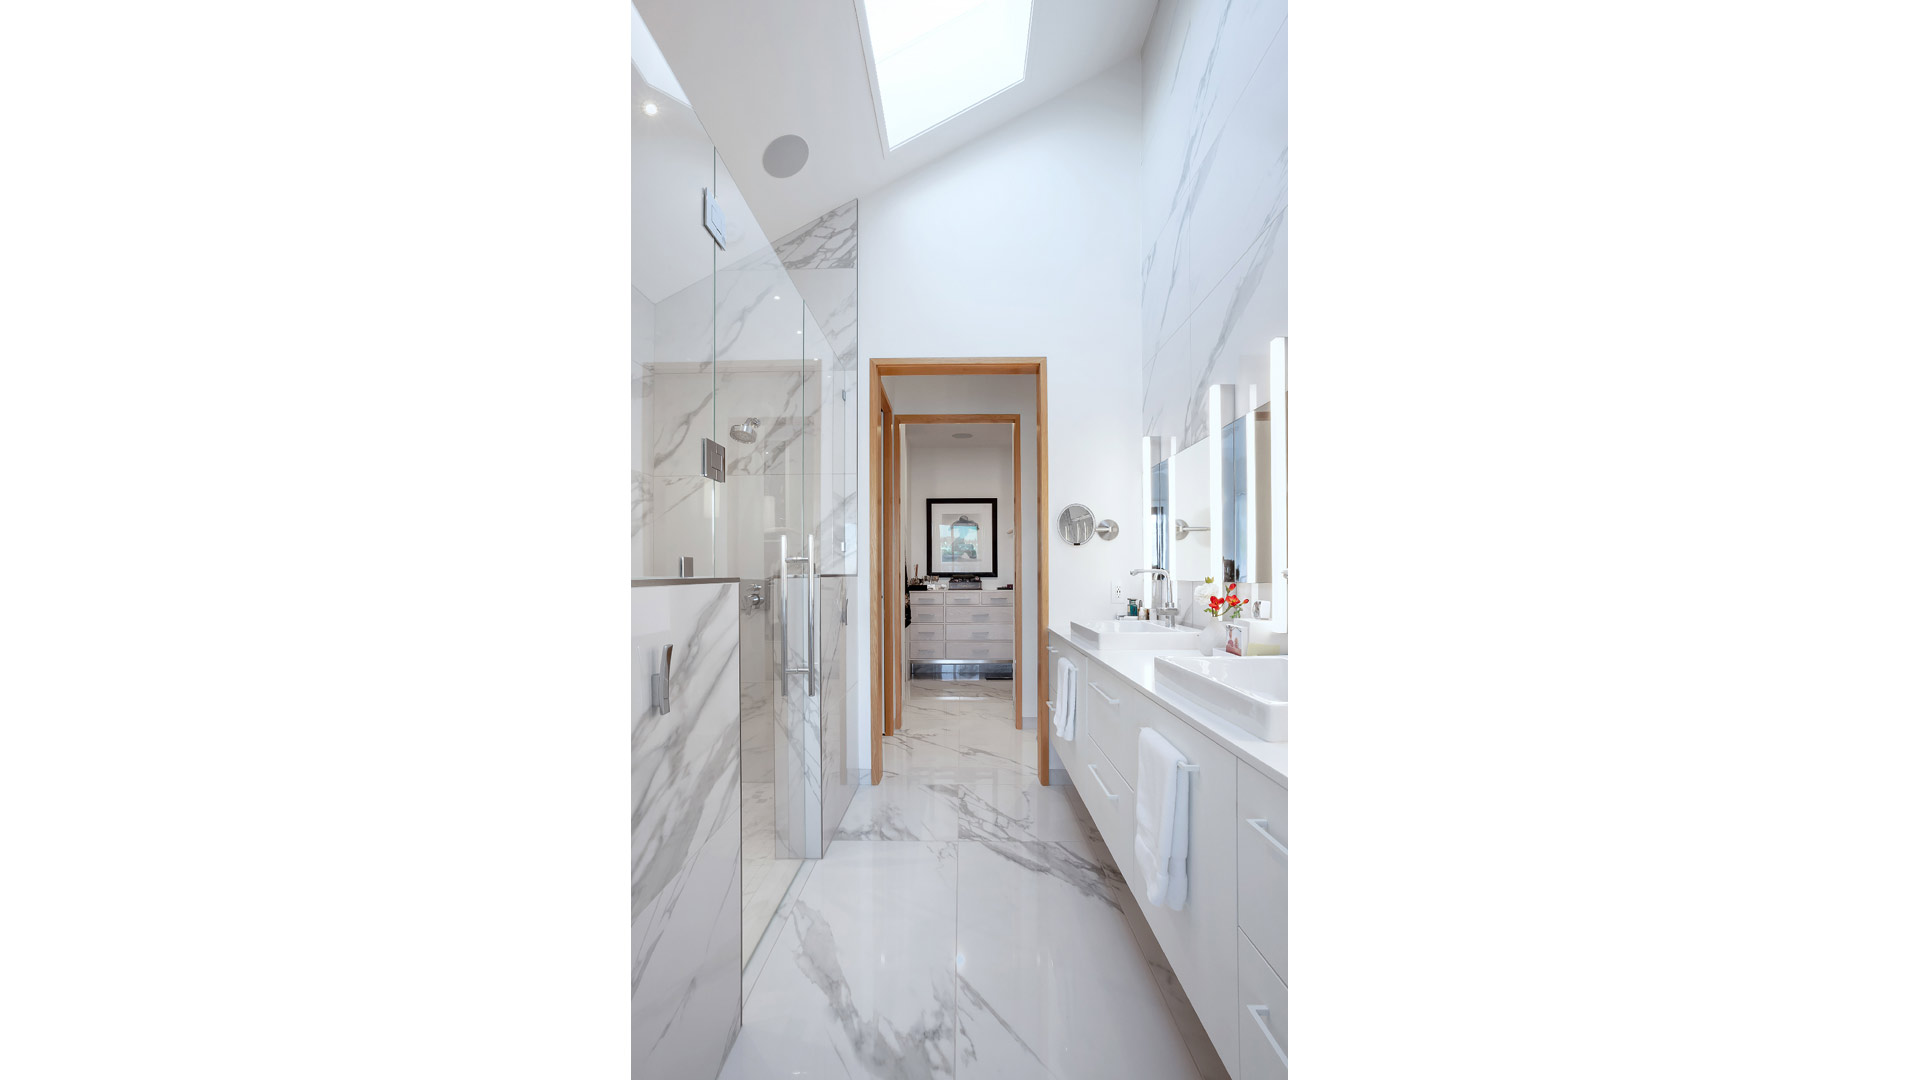 Master Spa Bathroom features porcelain floor + wall tile, skylight, vaulted ceilings, white floating vanity, frameless glass shower enclosure, half-height shower walls, and white oak casings - Modern Lakehouse Renovation - Clearwater - Indianapolis